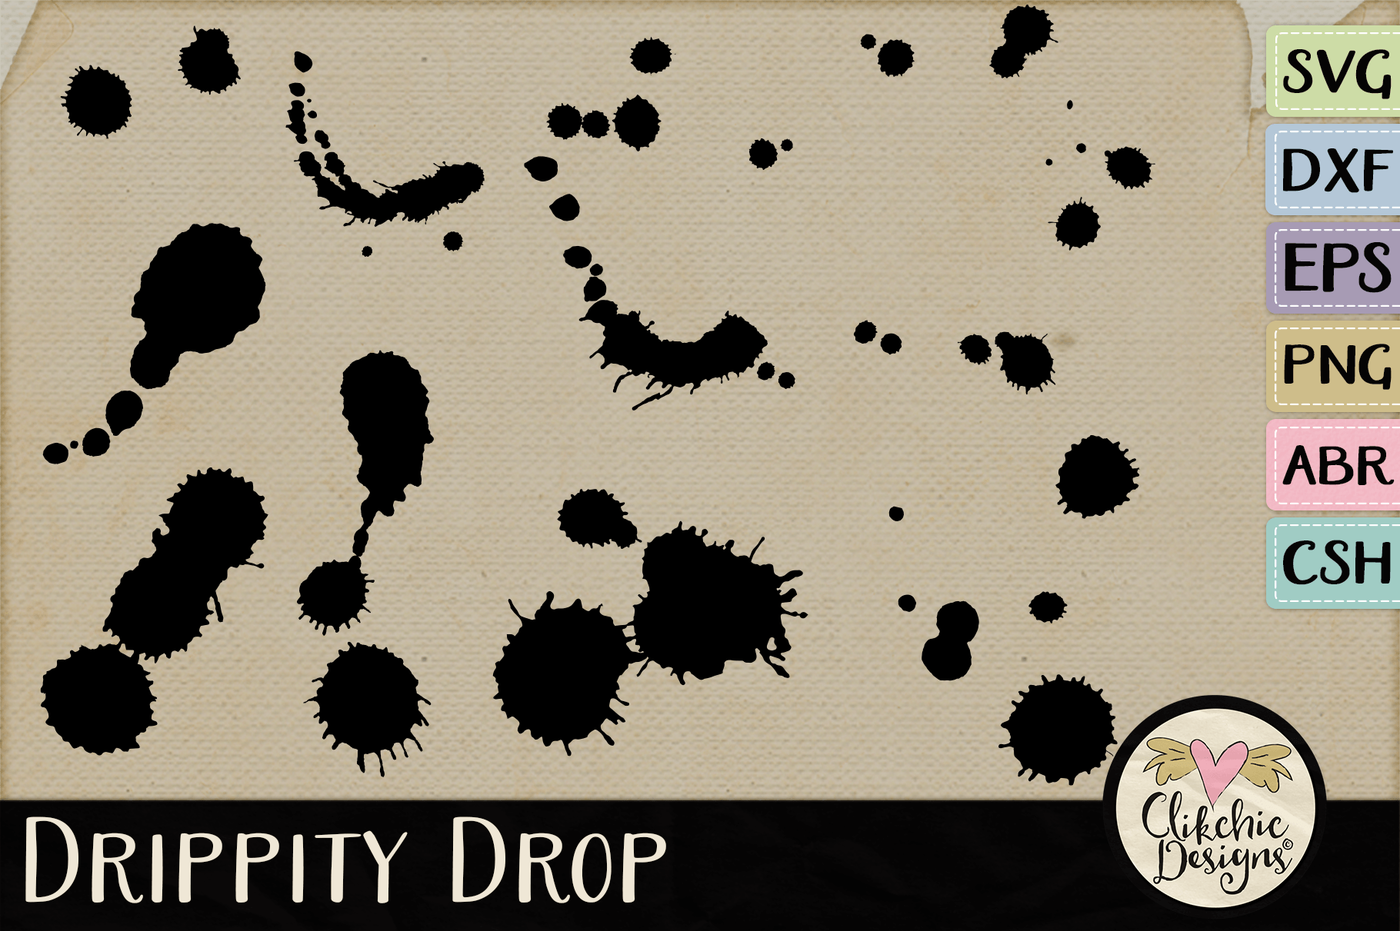 Drippity Drop Svg Cutting Files Brushes Custom Shapes By